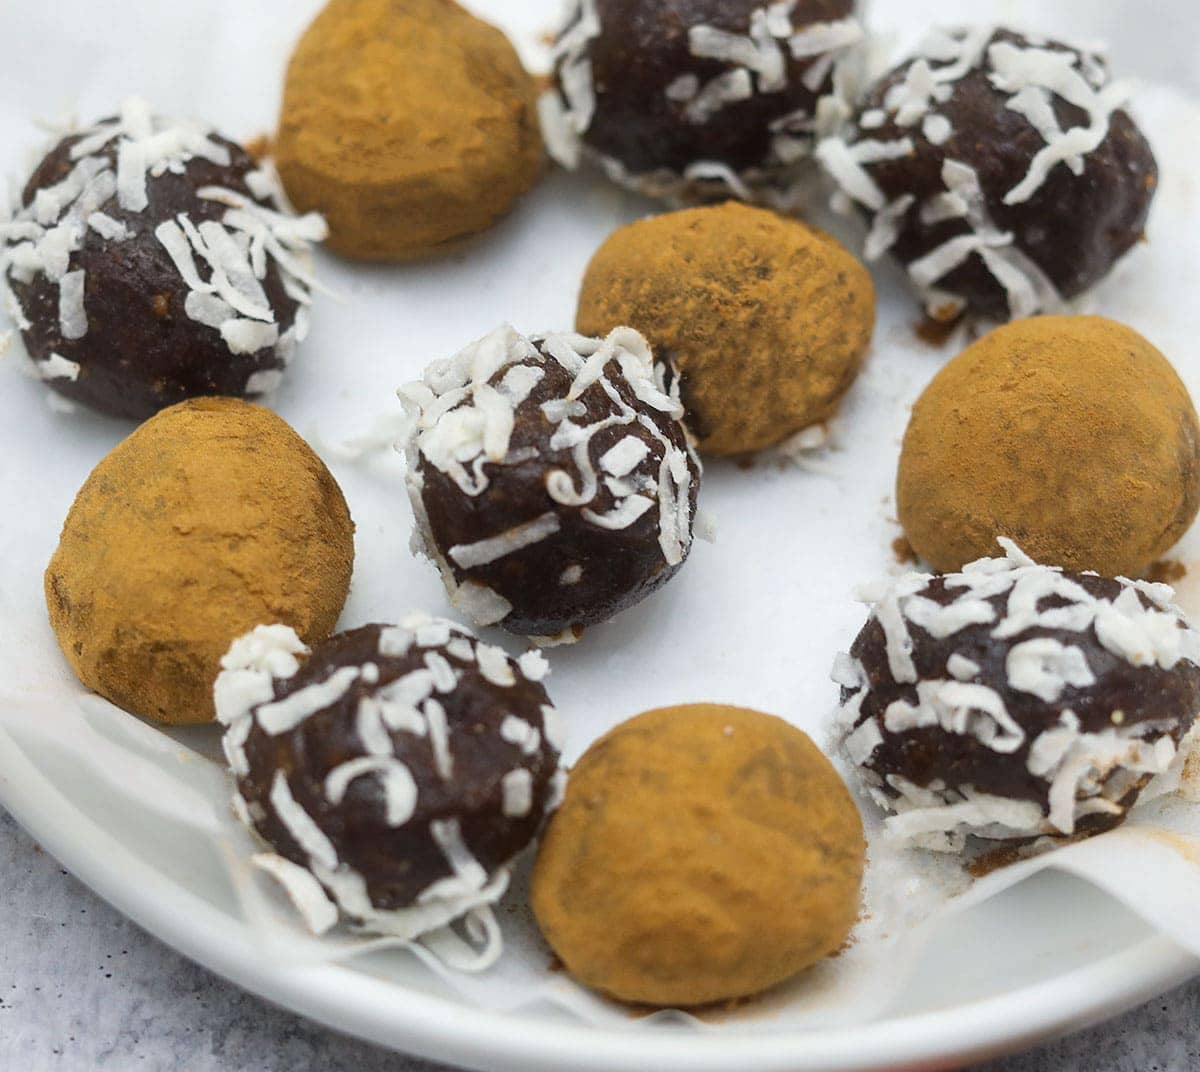 carob truffles in a white plate, close up view